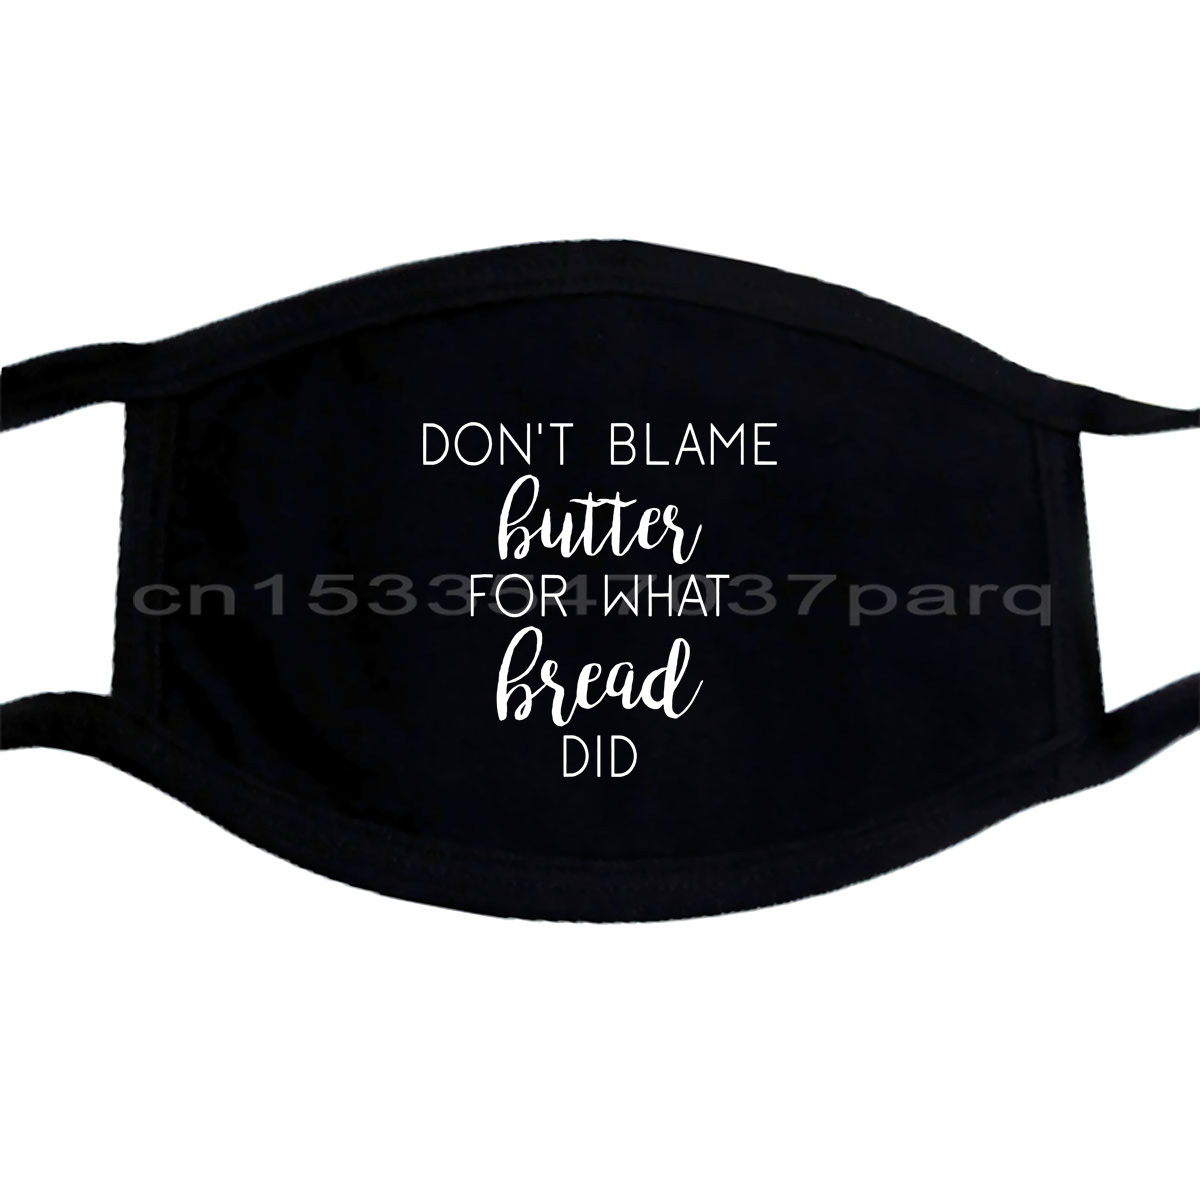 Don't Blame Butter For What Bread Did Funny Keto Diet Ketosis Black Masks Cool Casual pride Mask men Unisex Fashion;